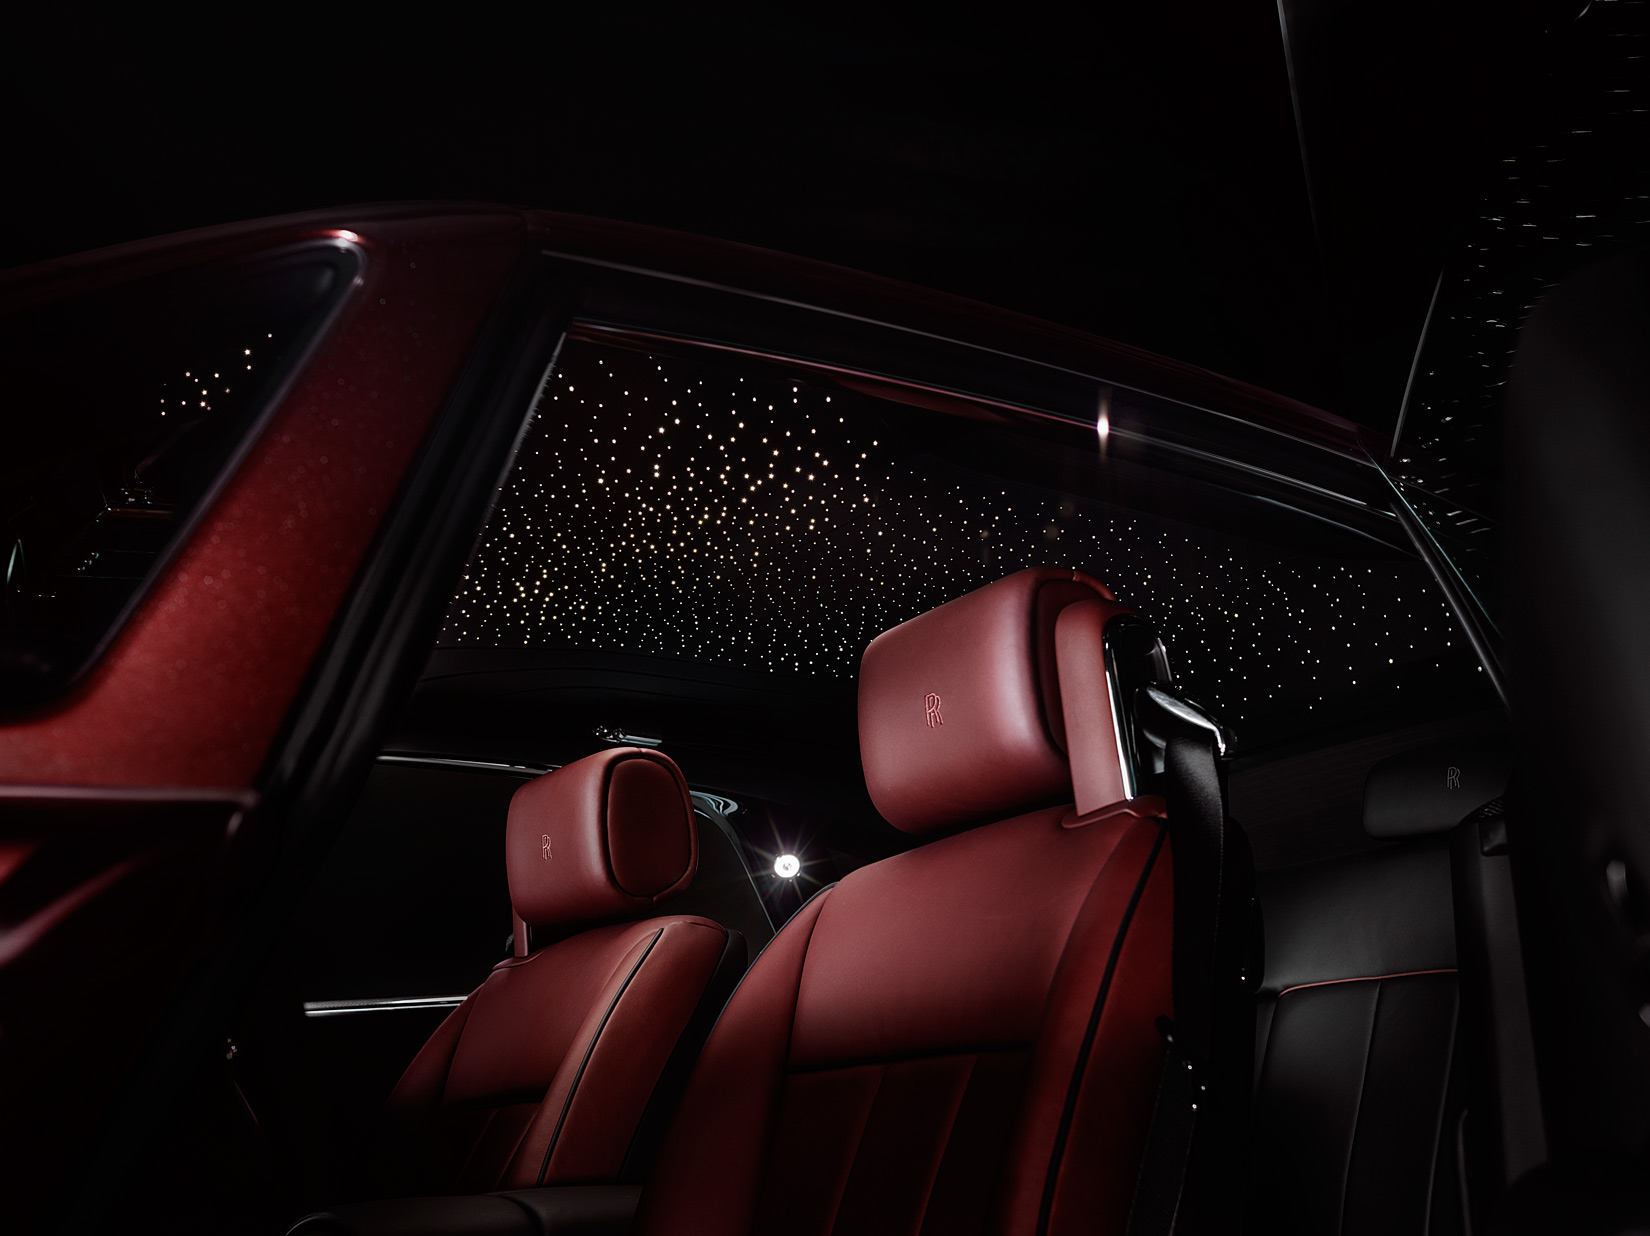 Rolls-Royce Motor Cars Reaches The Pinnacle With The Phantom Zenith Collection 13